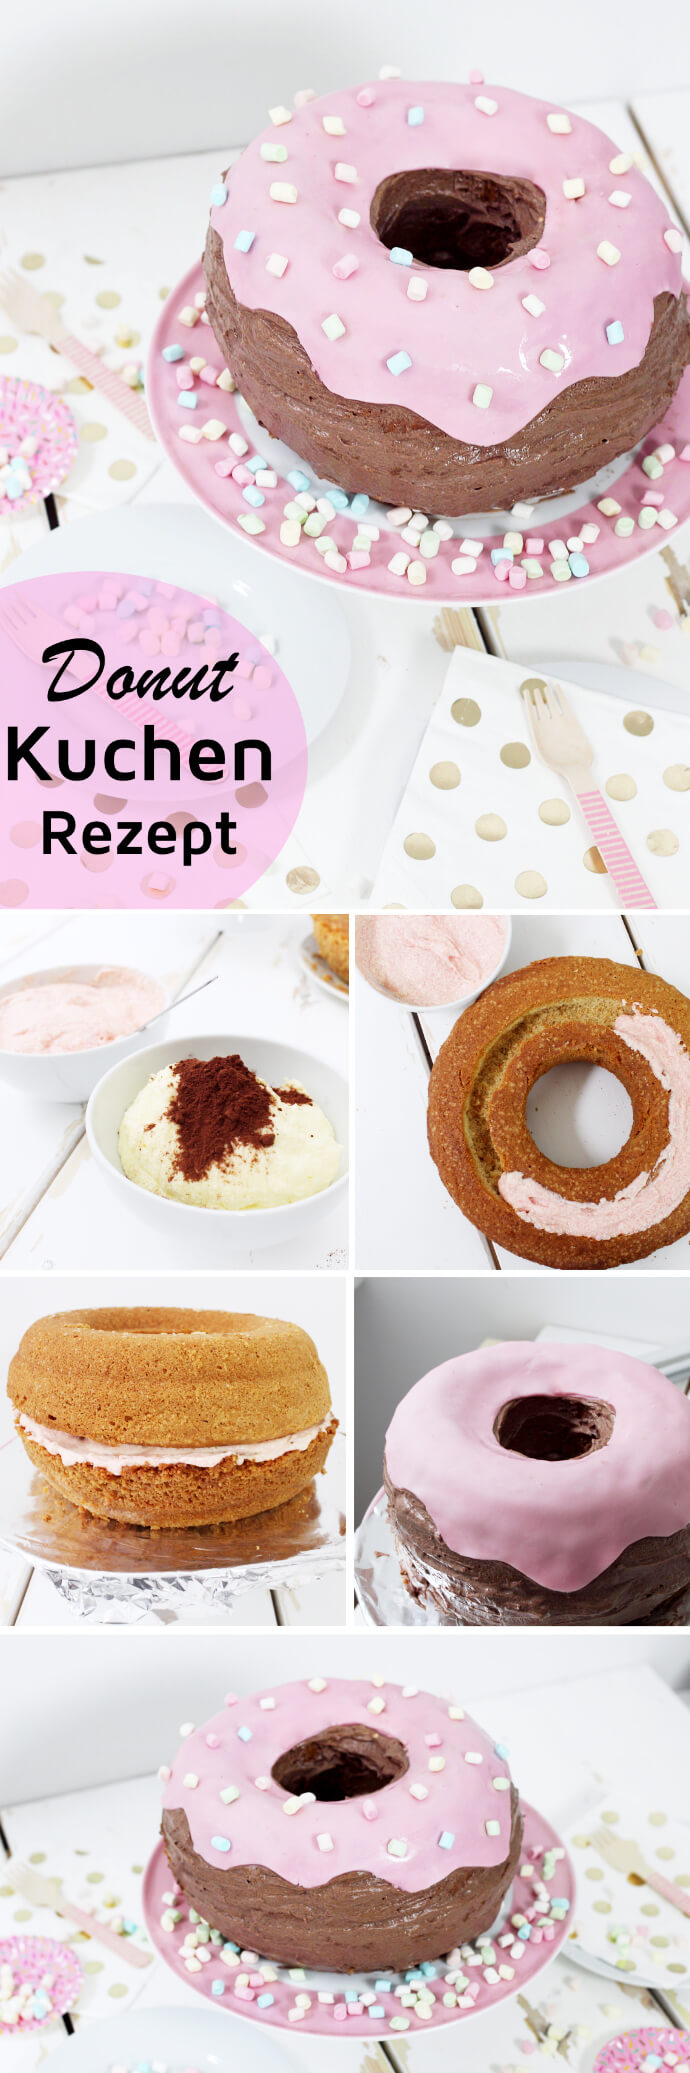 donut-kuchen-rezept-geburtstag-torte-party-backen-diy-blog